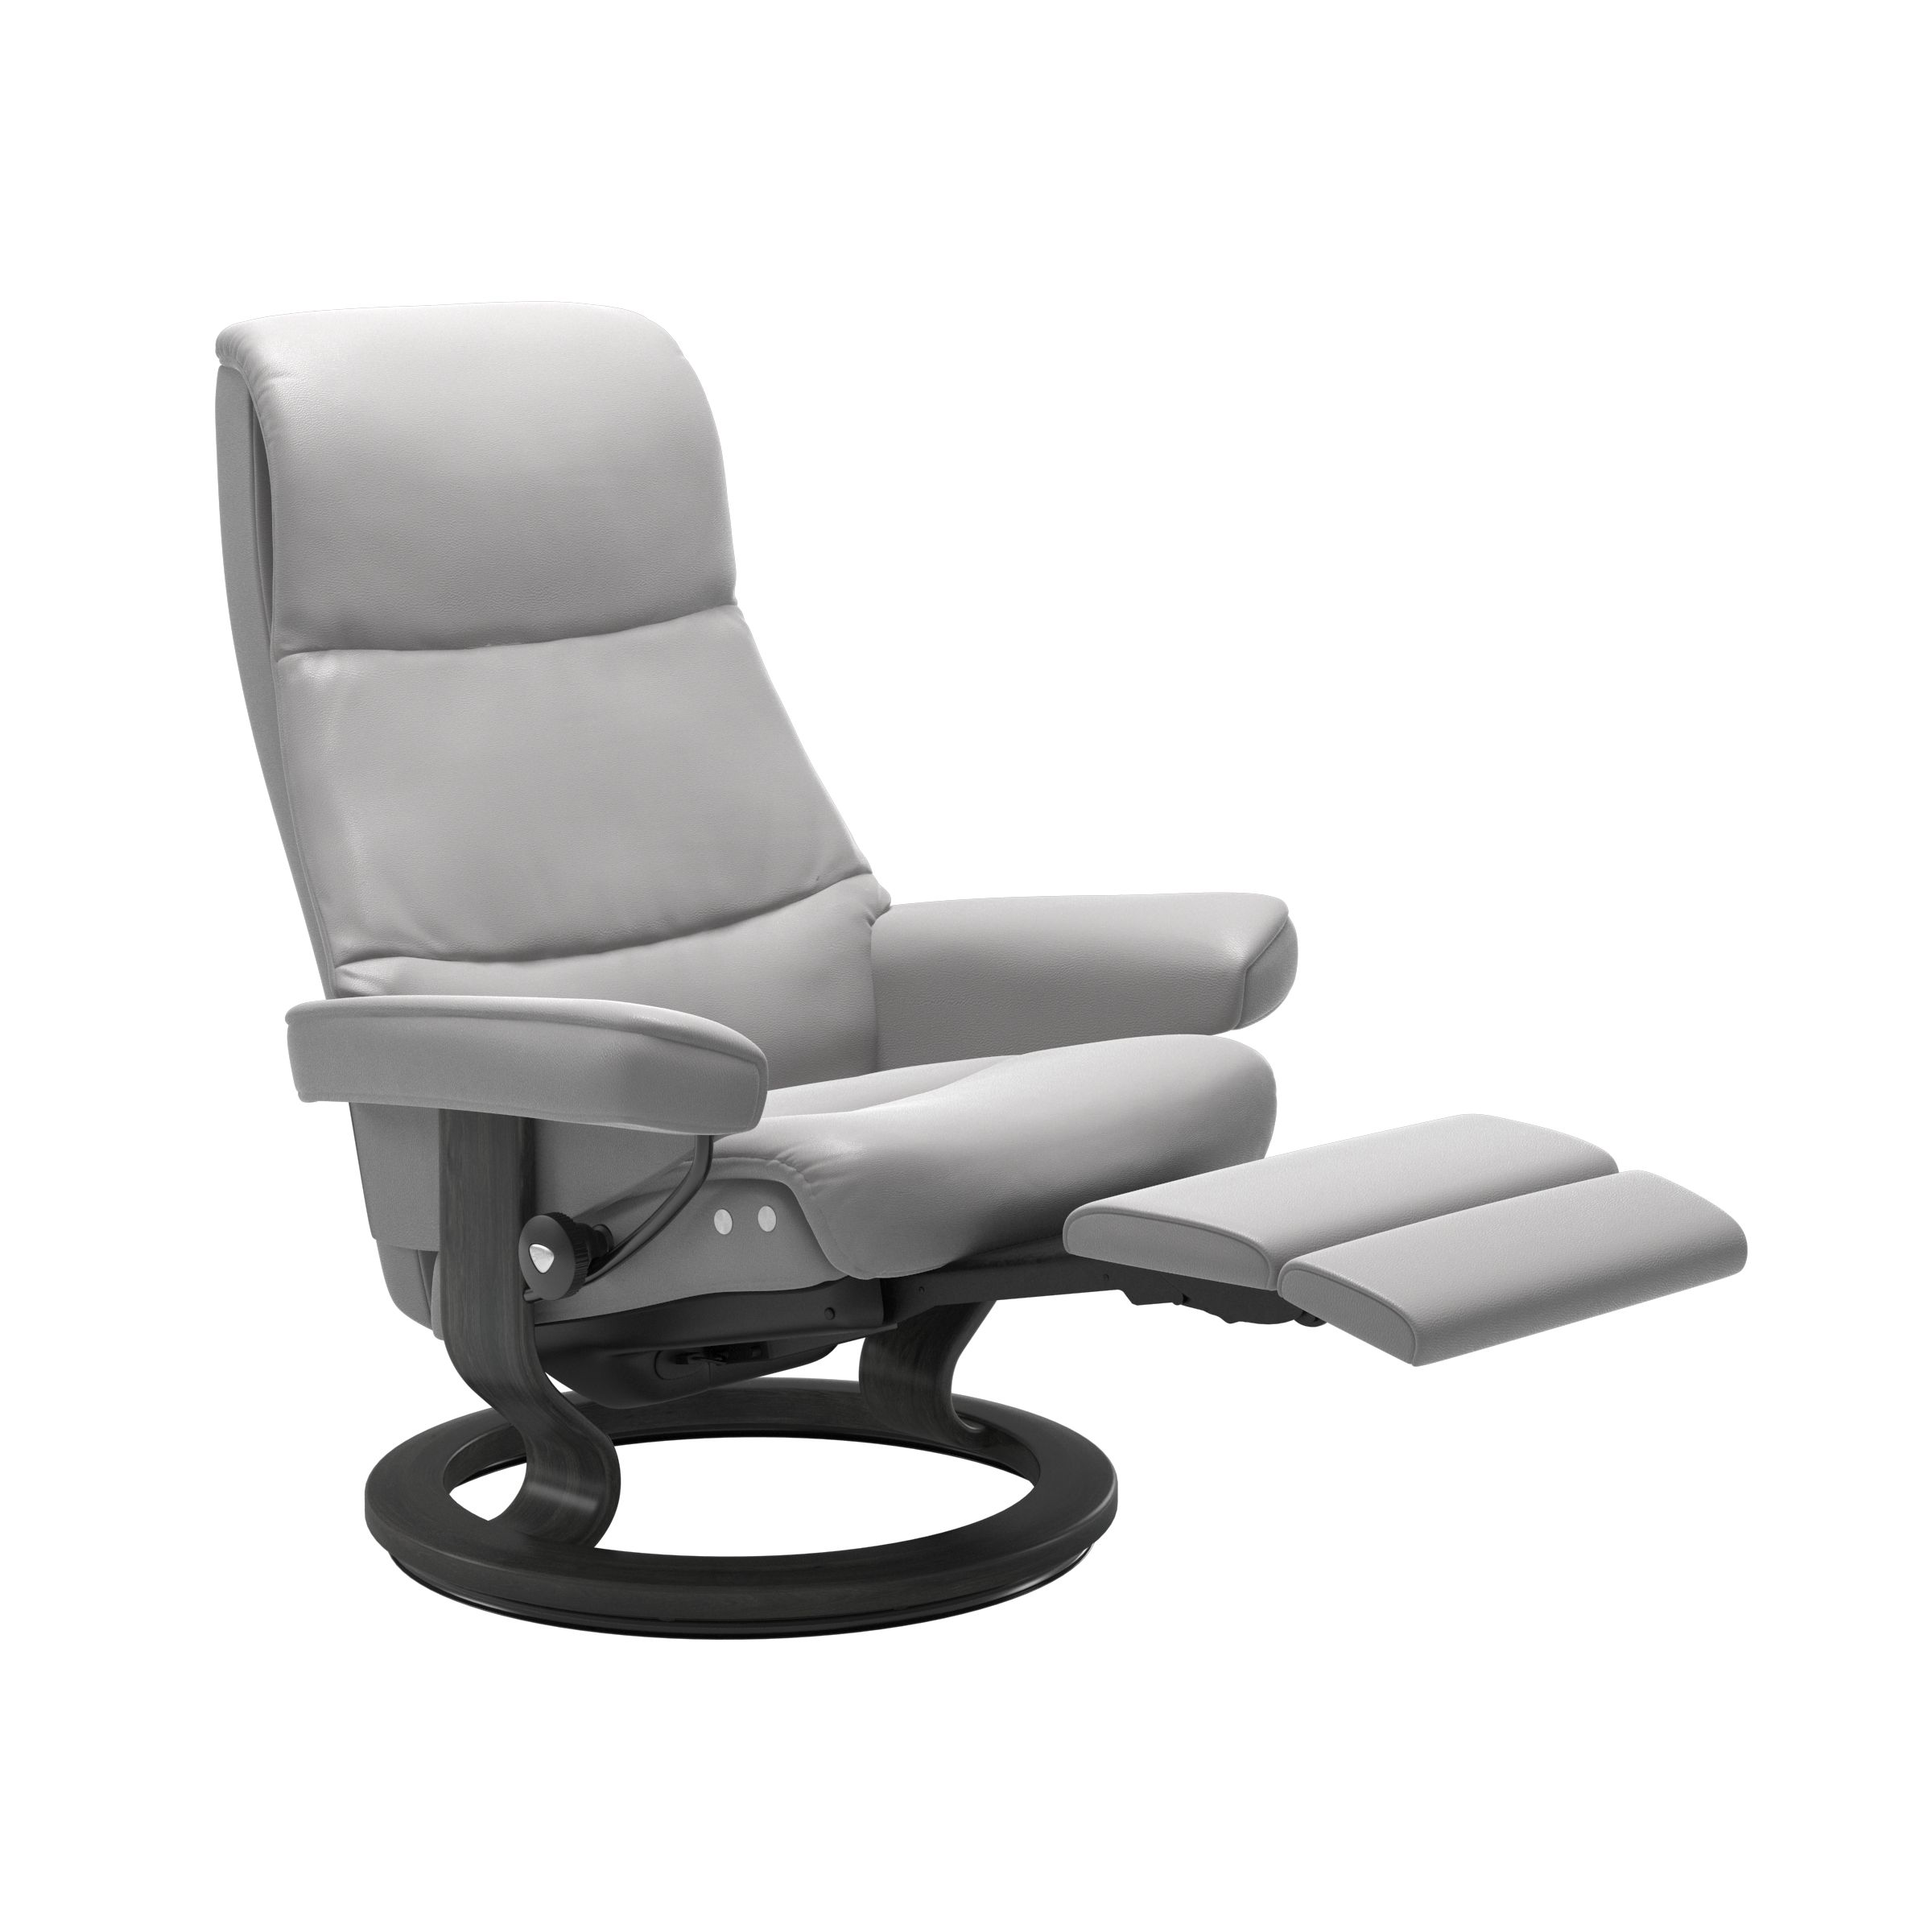 Stressless Relaxfauteuil View L Classic Grijs